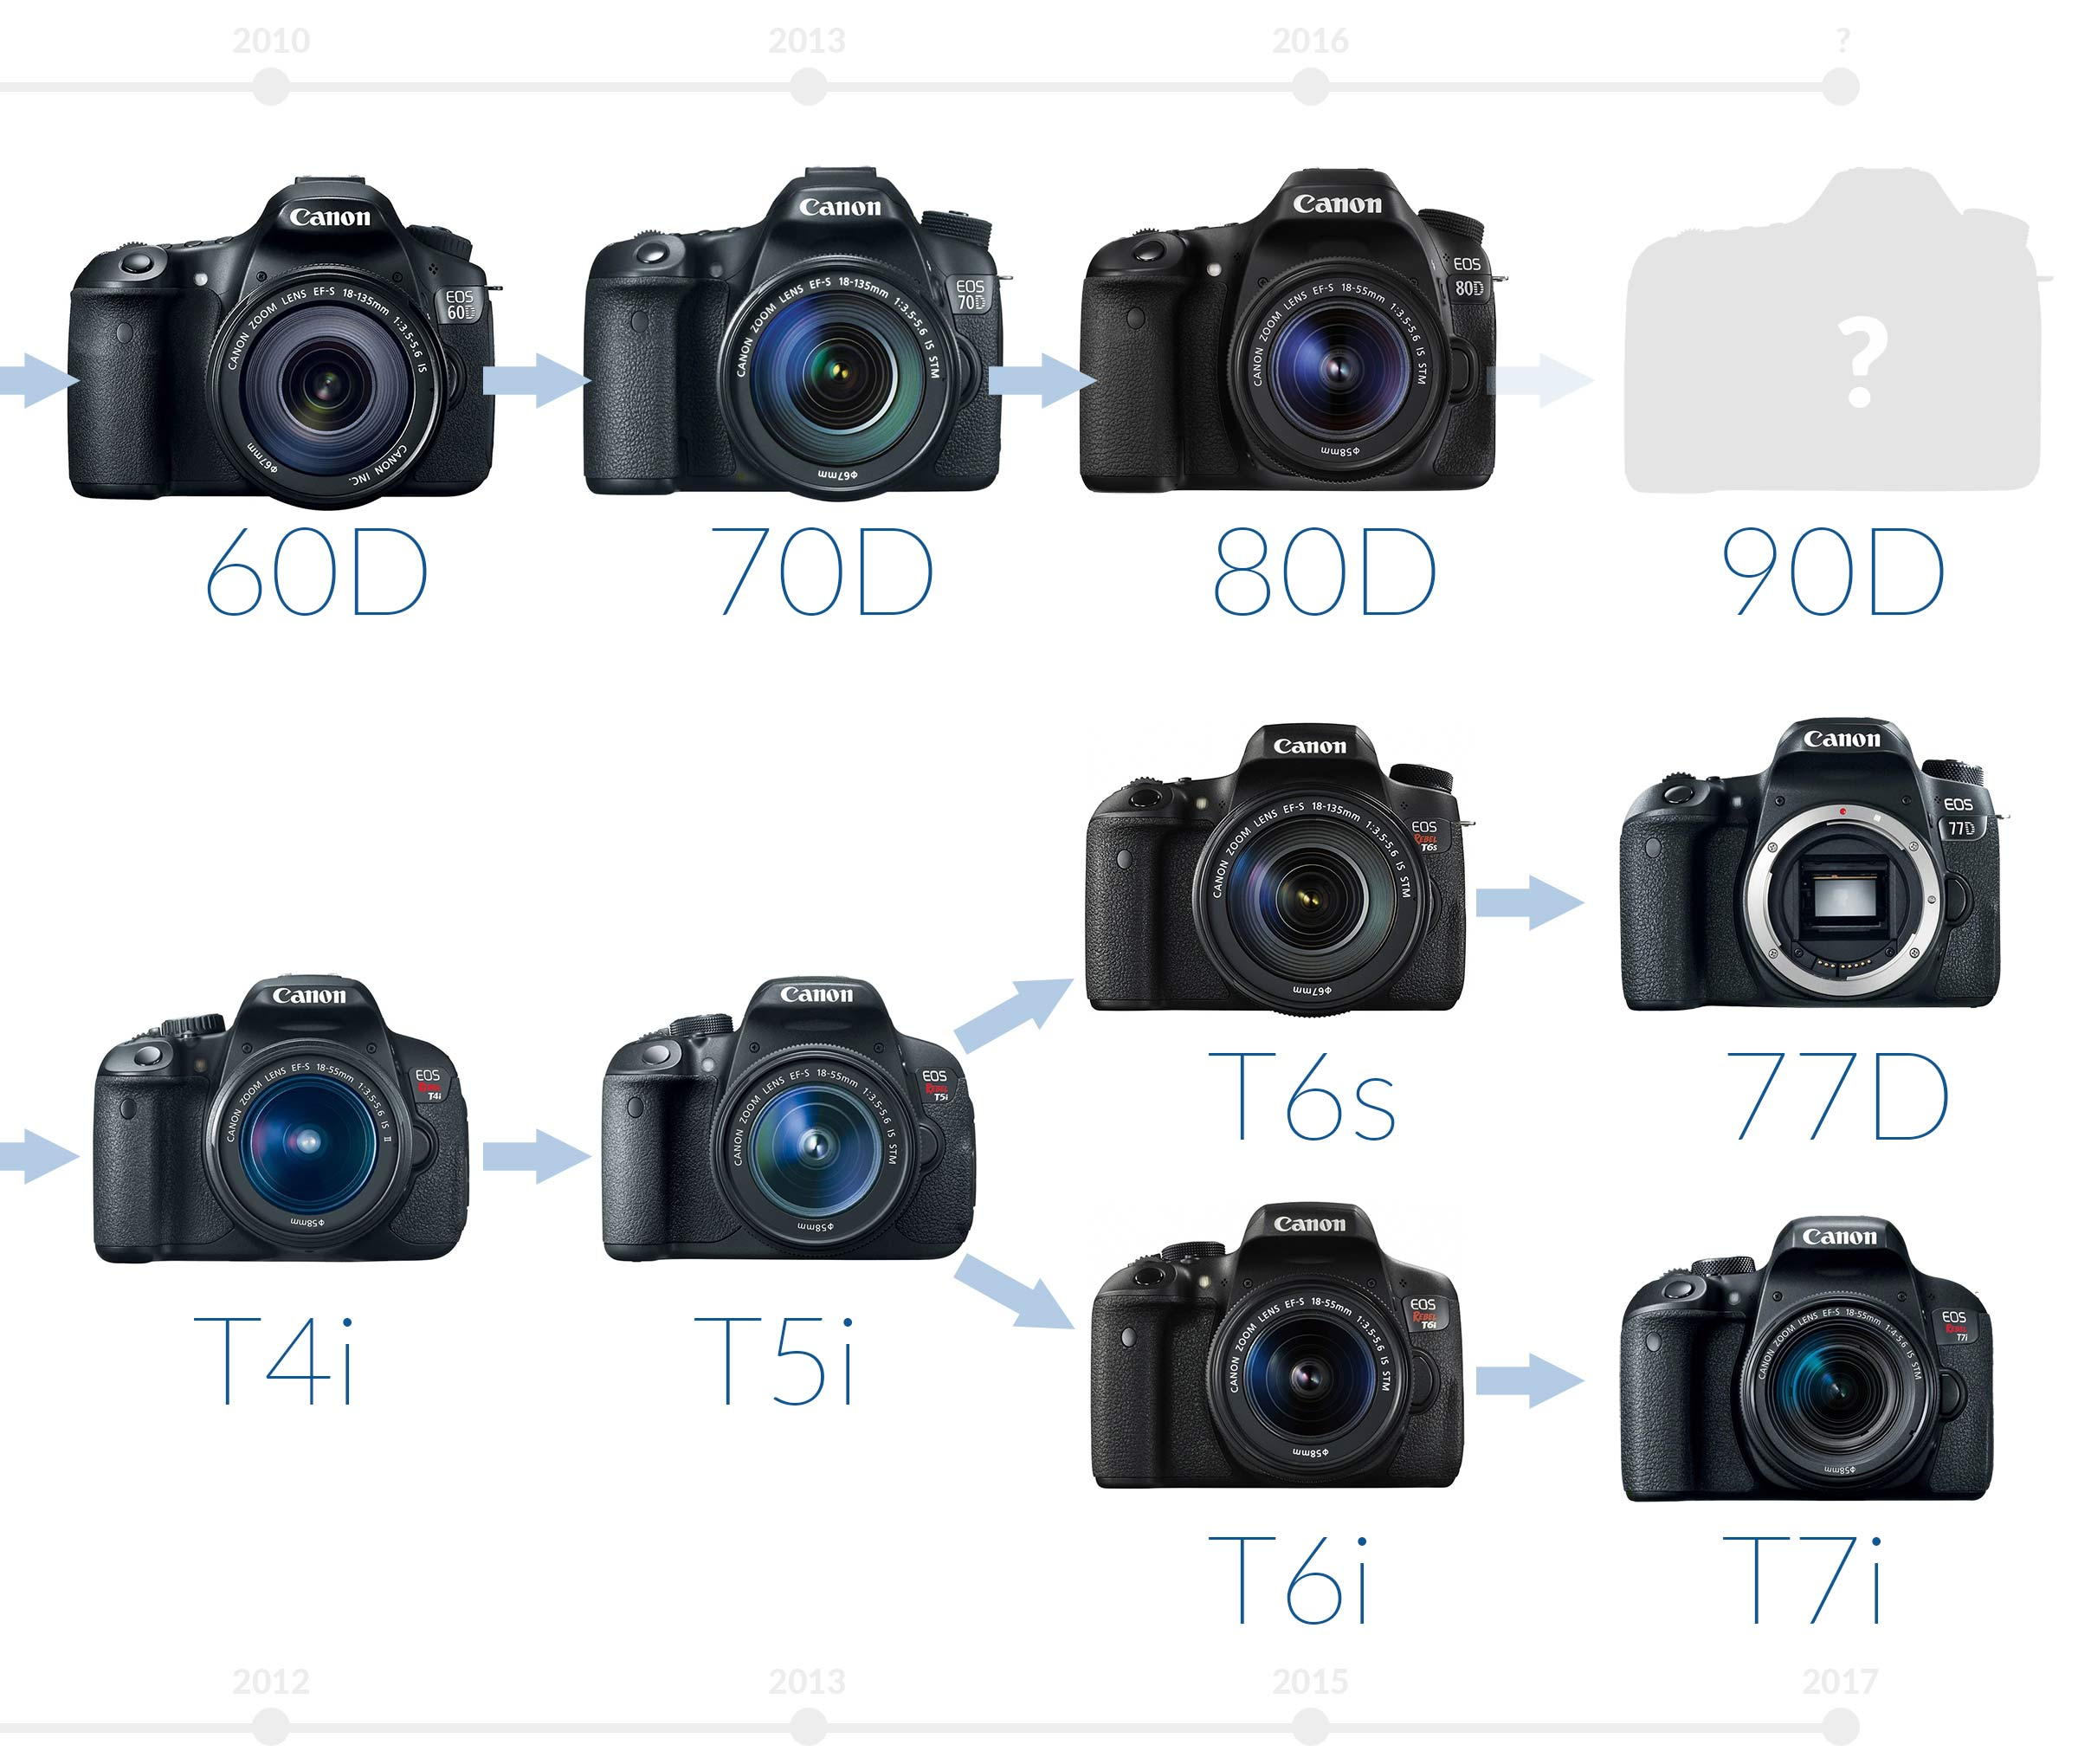 Canon EOS 6D Overview; The Canon EOS 6D is a full-frame MP DSLR offering exceptionally high image quality and detail while providing compatibility and convenience through its design and features. When paired with the powerful DIGIC 5+ image processor and bit A/D conversion, the full-frame sensor is capable of recording vivid imagery with expanded sensitivity up to ISO